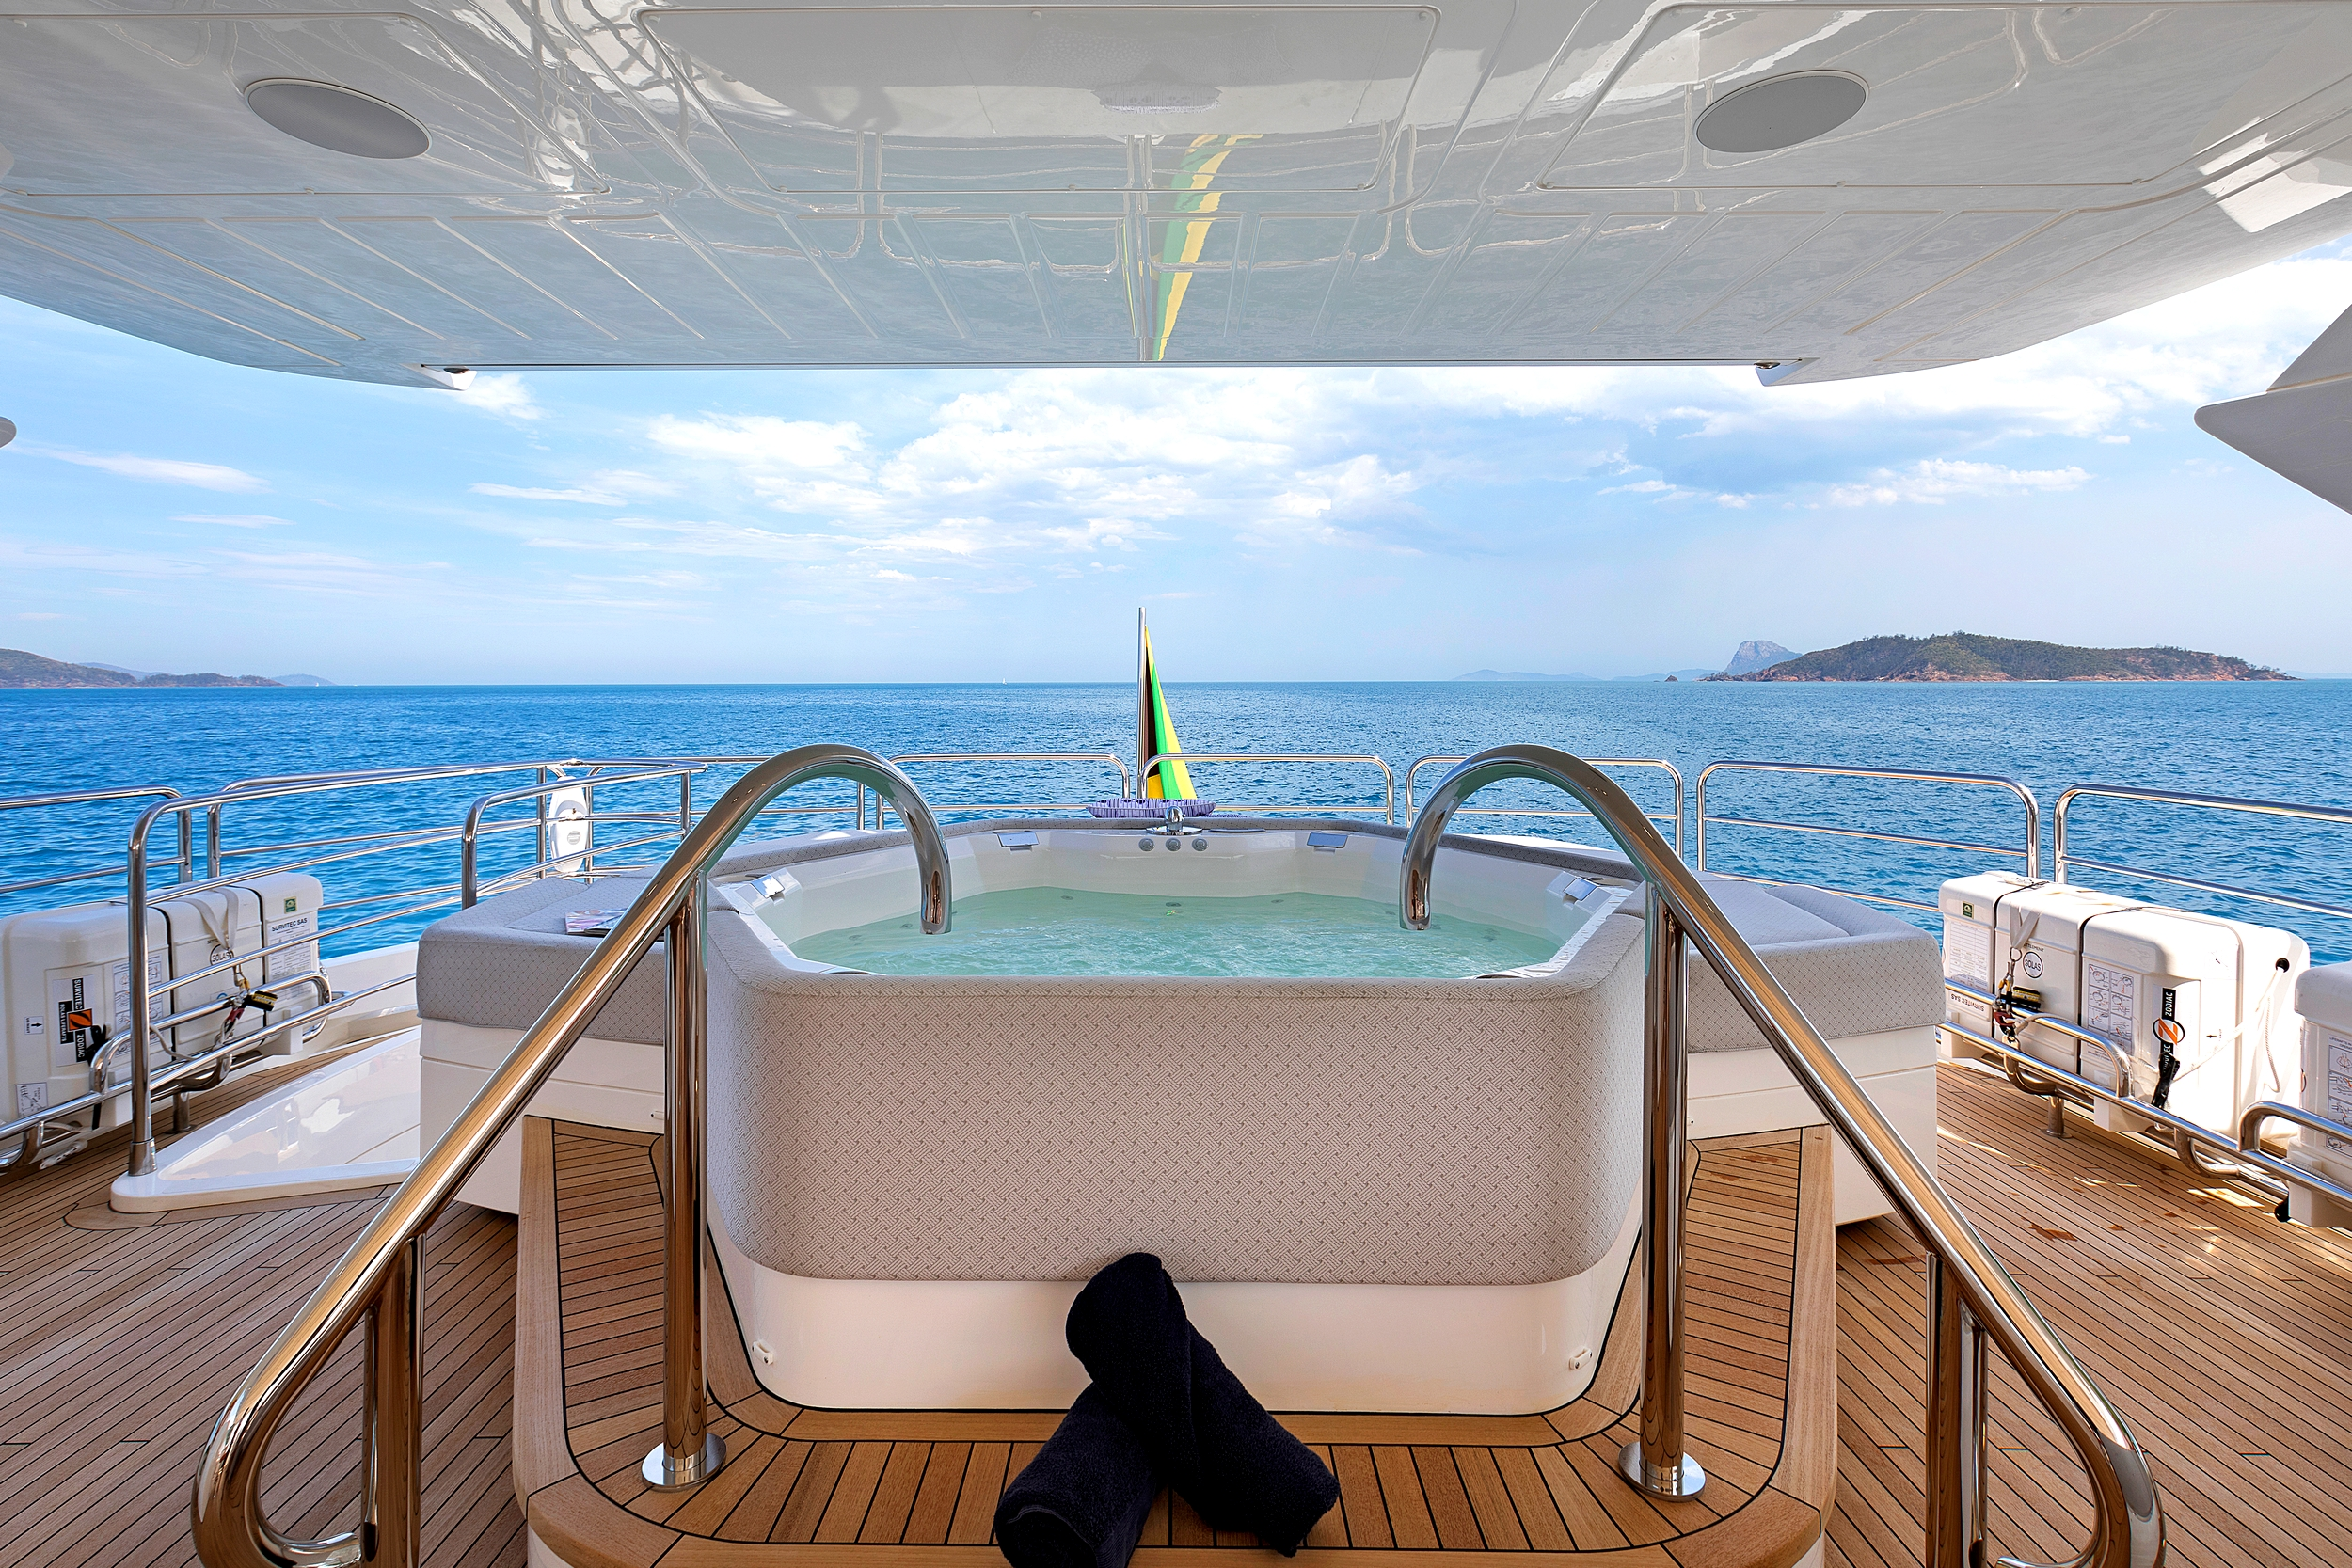 view of the jacuzzi onboard yacht Settlement with the ocean in the background